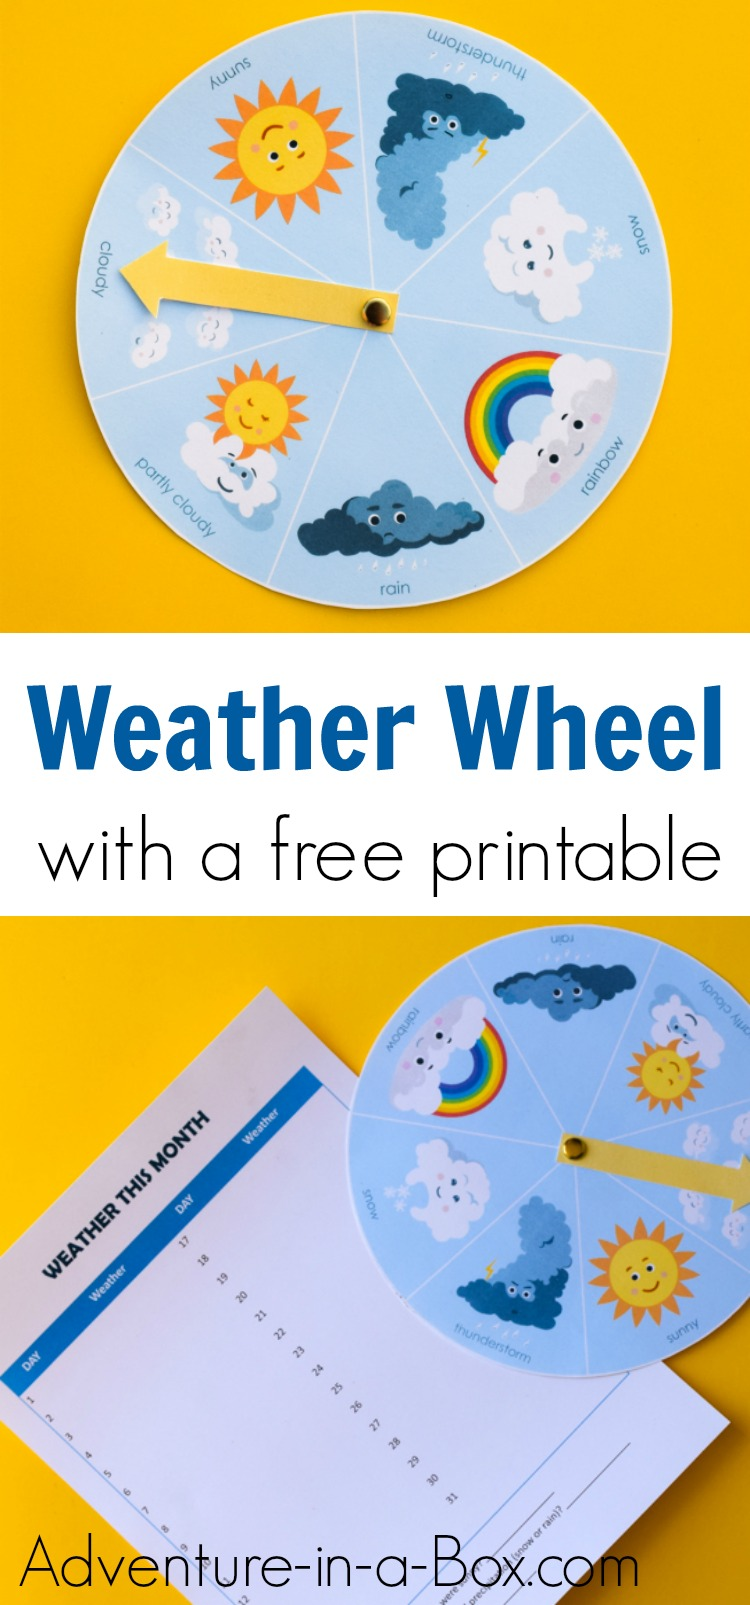 For preschools and kindergartens, supplement a weather study unit with this cute and free printable weather wheel for kids! #kindergarten #preschool #weatherstudy #homeschool #printable